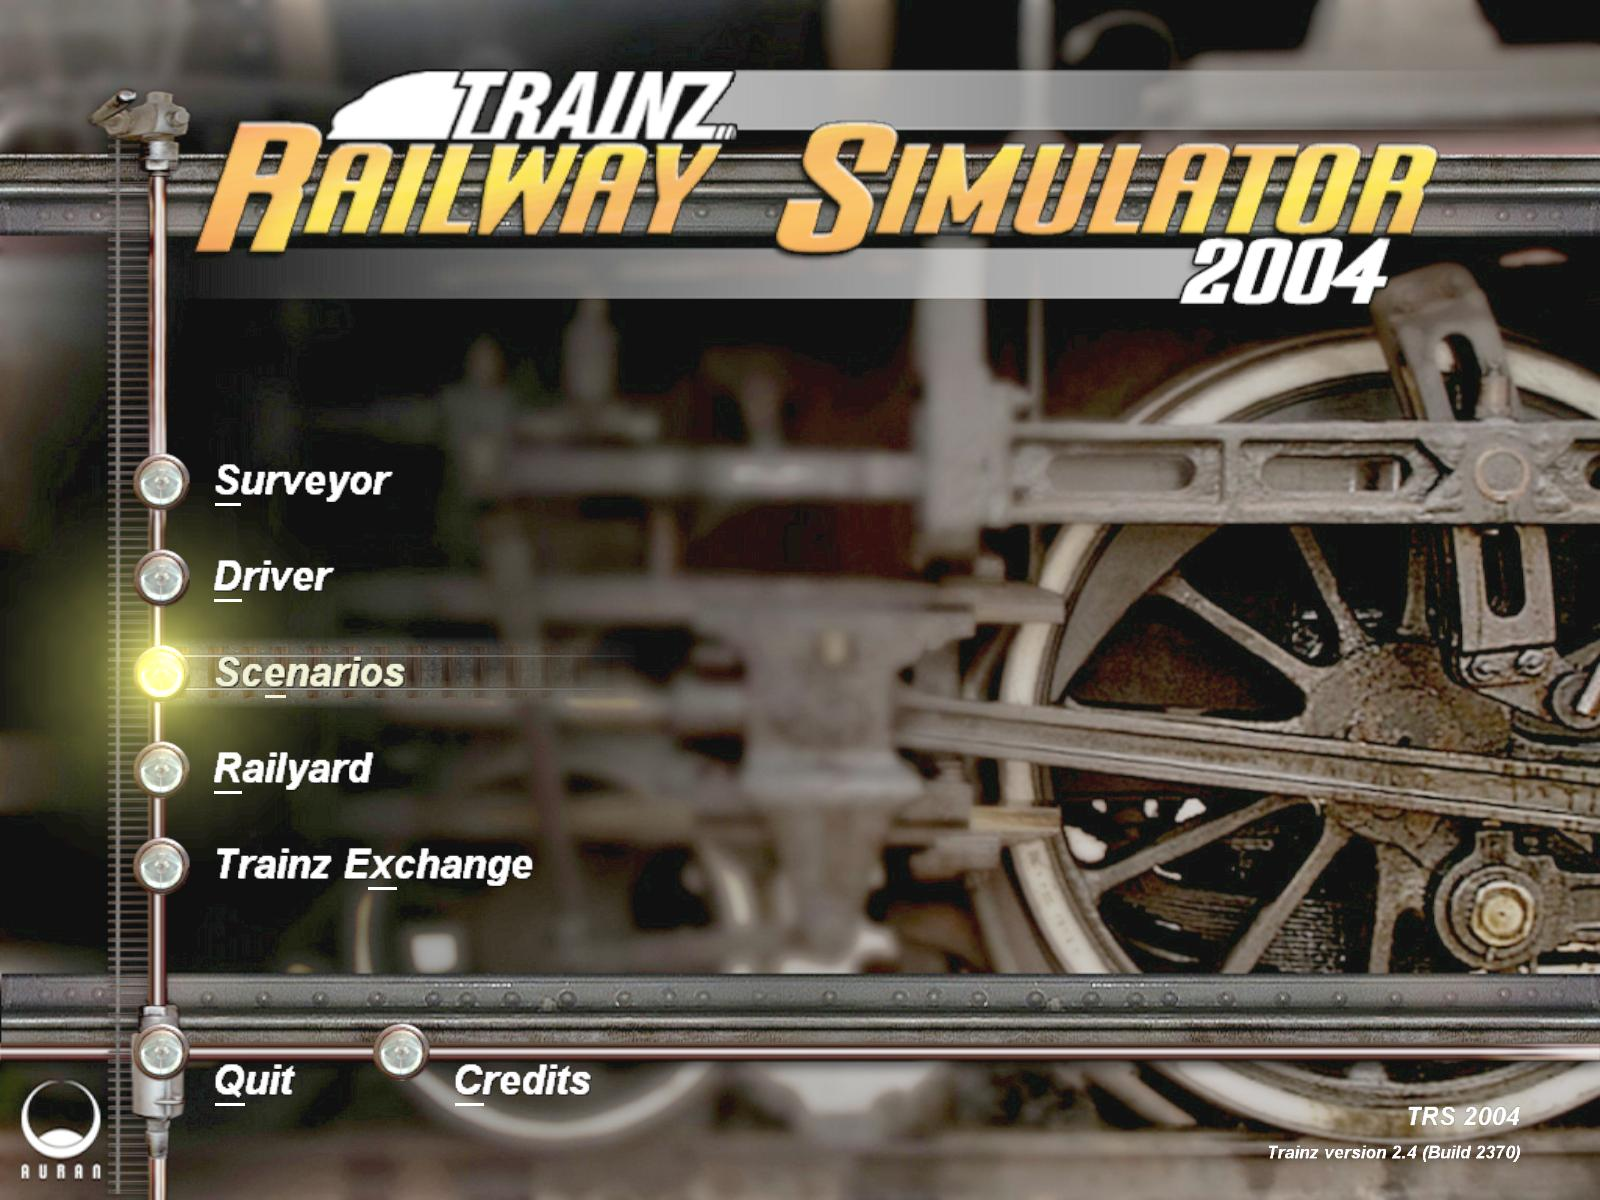 How to download and install content into tainz railroad simulator.